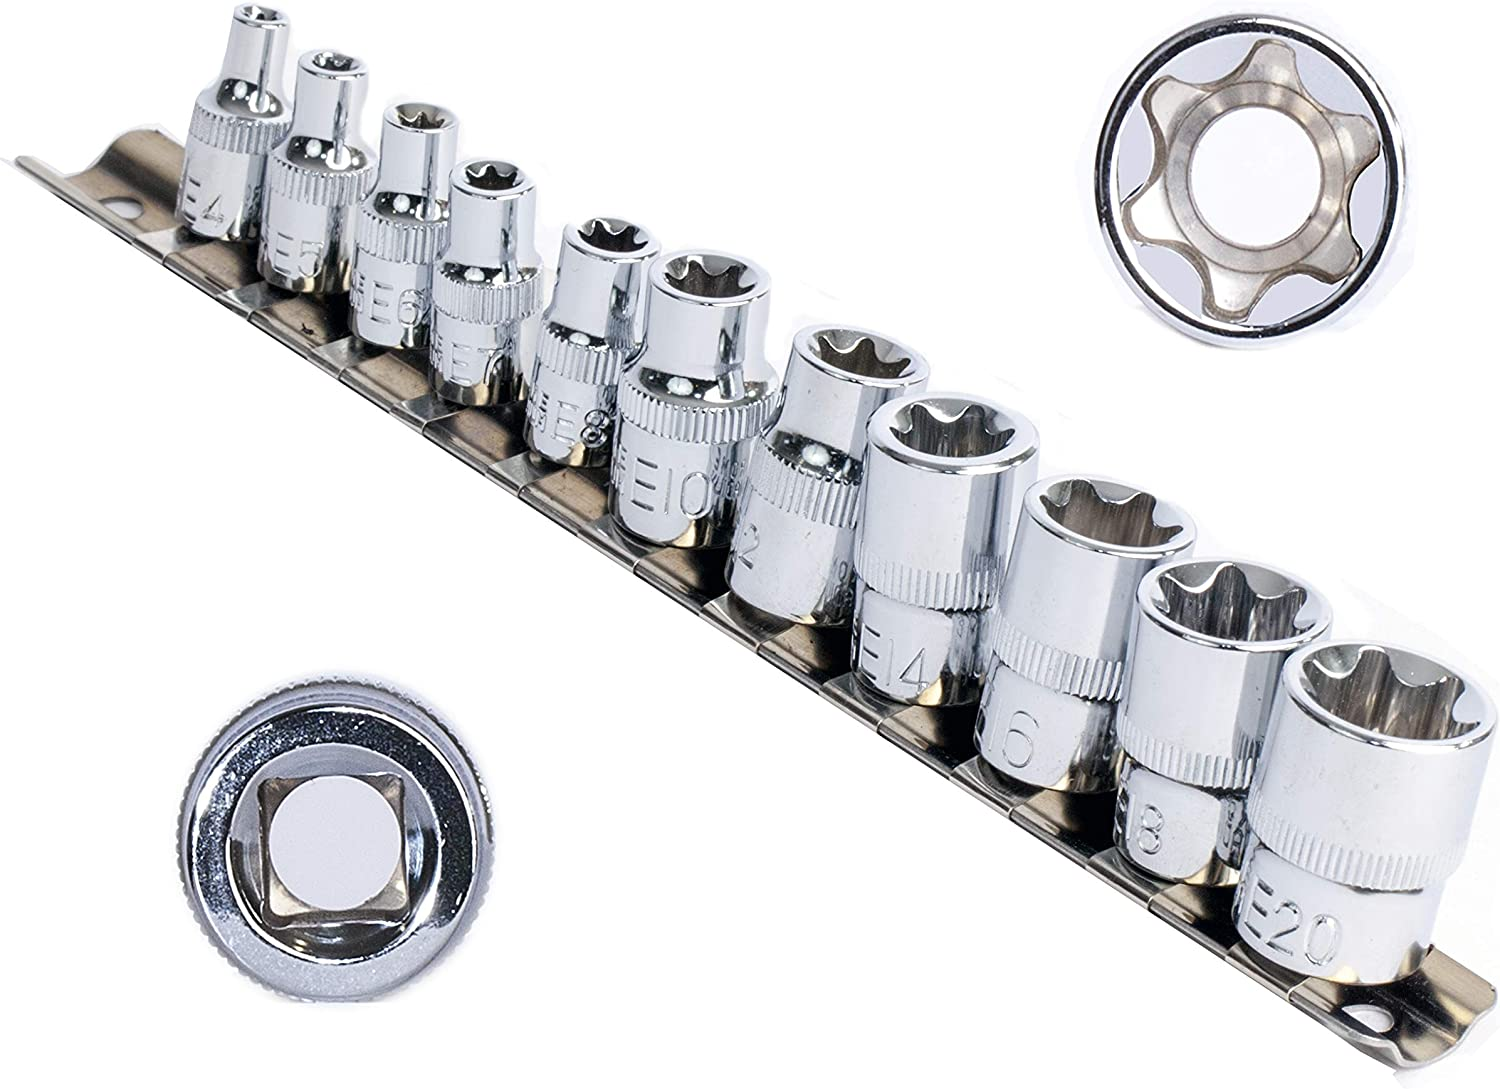 eHomeA2Z 11 Pc E-Torx Female Star Drive CR-V Our shop most popular E Steel Set Sockets OFFicial mail order